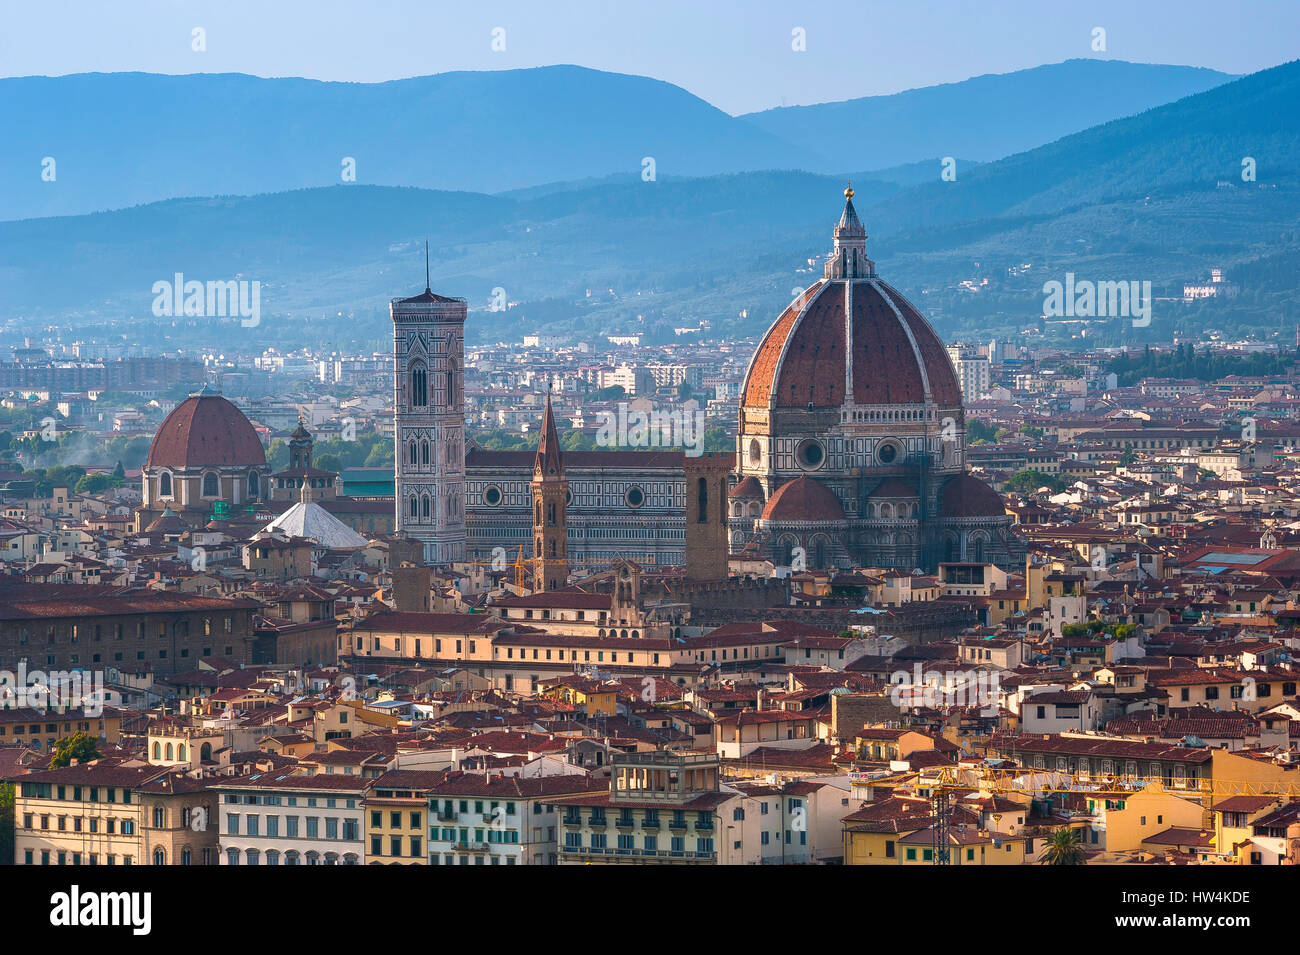 Florence cathedral, the Duomo (Santa Maria del Fiore) with its Brunelleschi designed dome in the centre of Florence,viewed - Stock Image